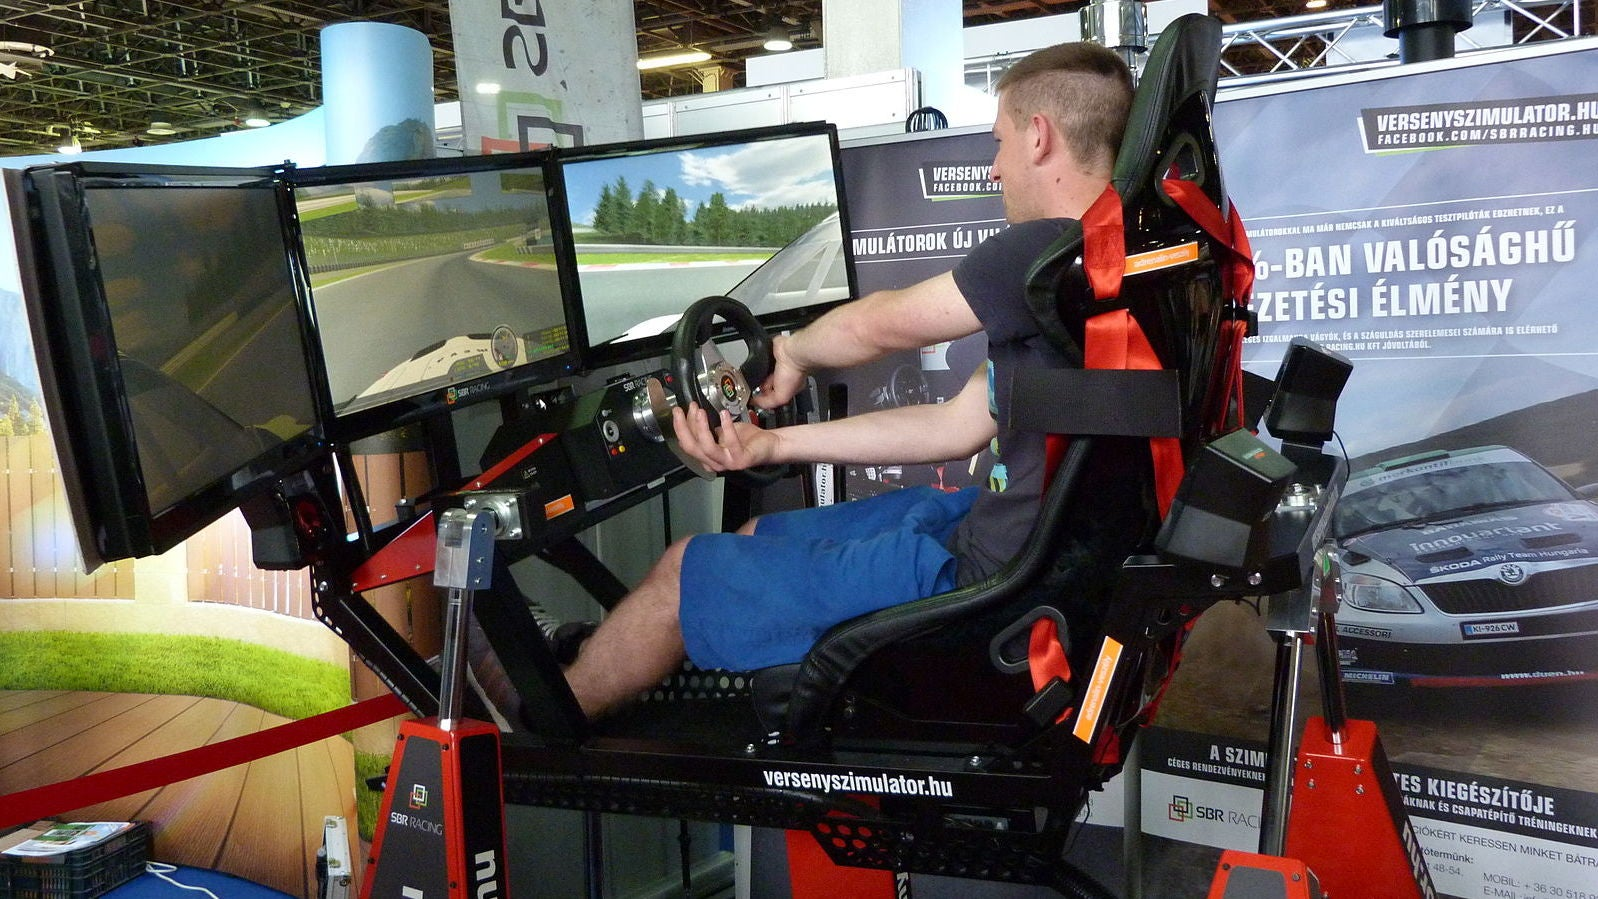 Germany Is Officially Recognising Sim Racing As A Legitimate Form Of Motorsport